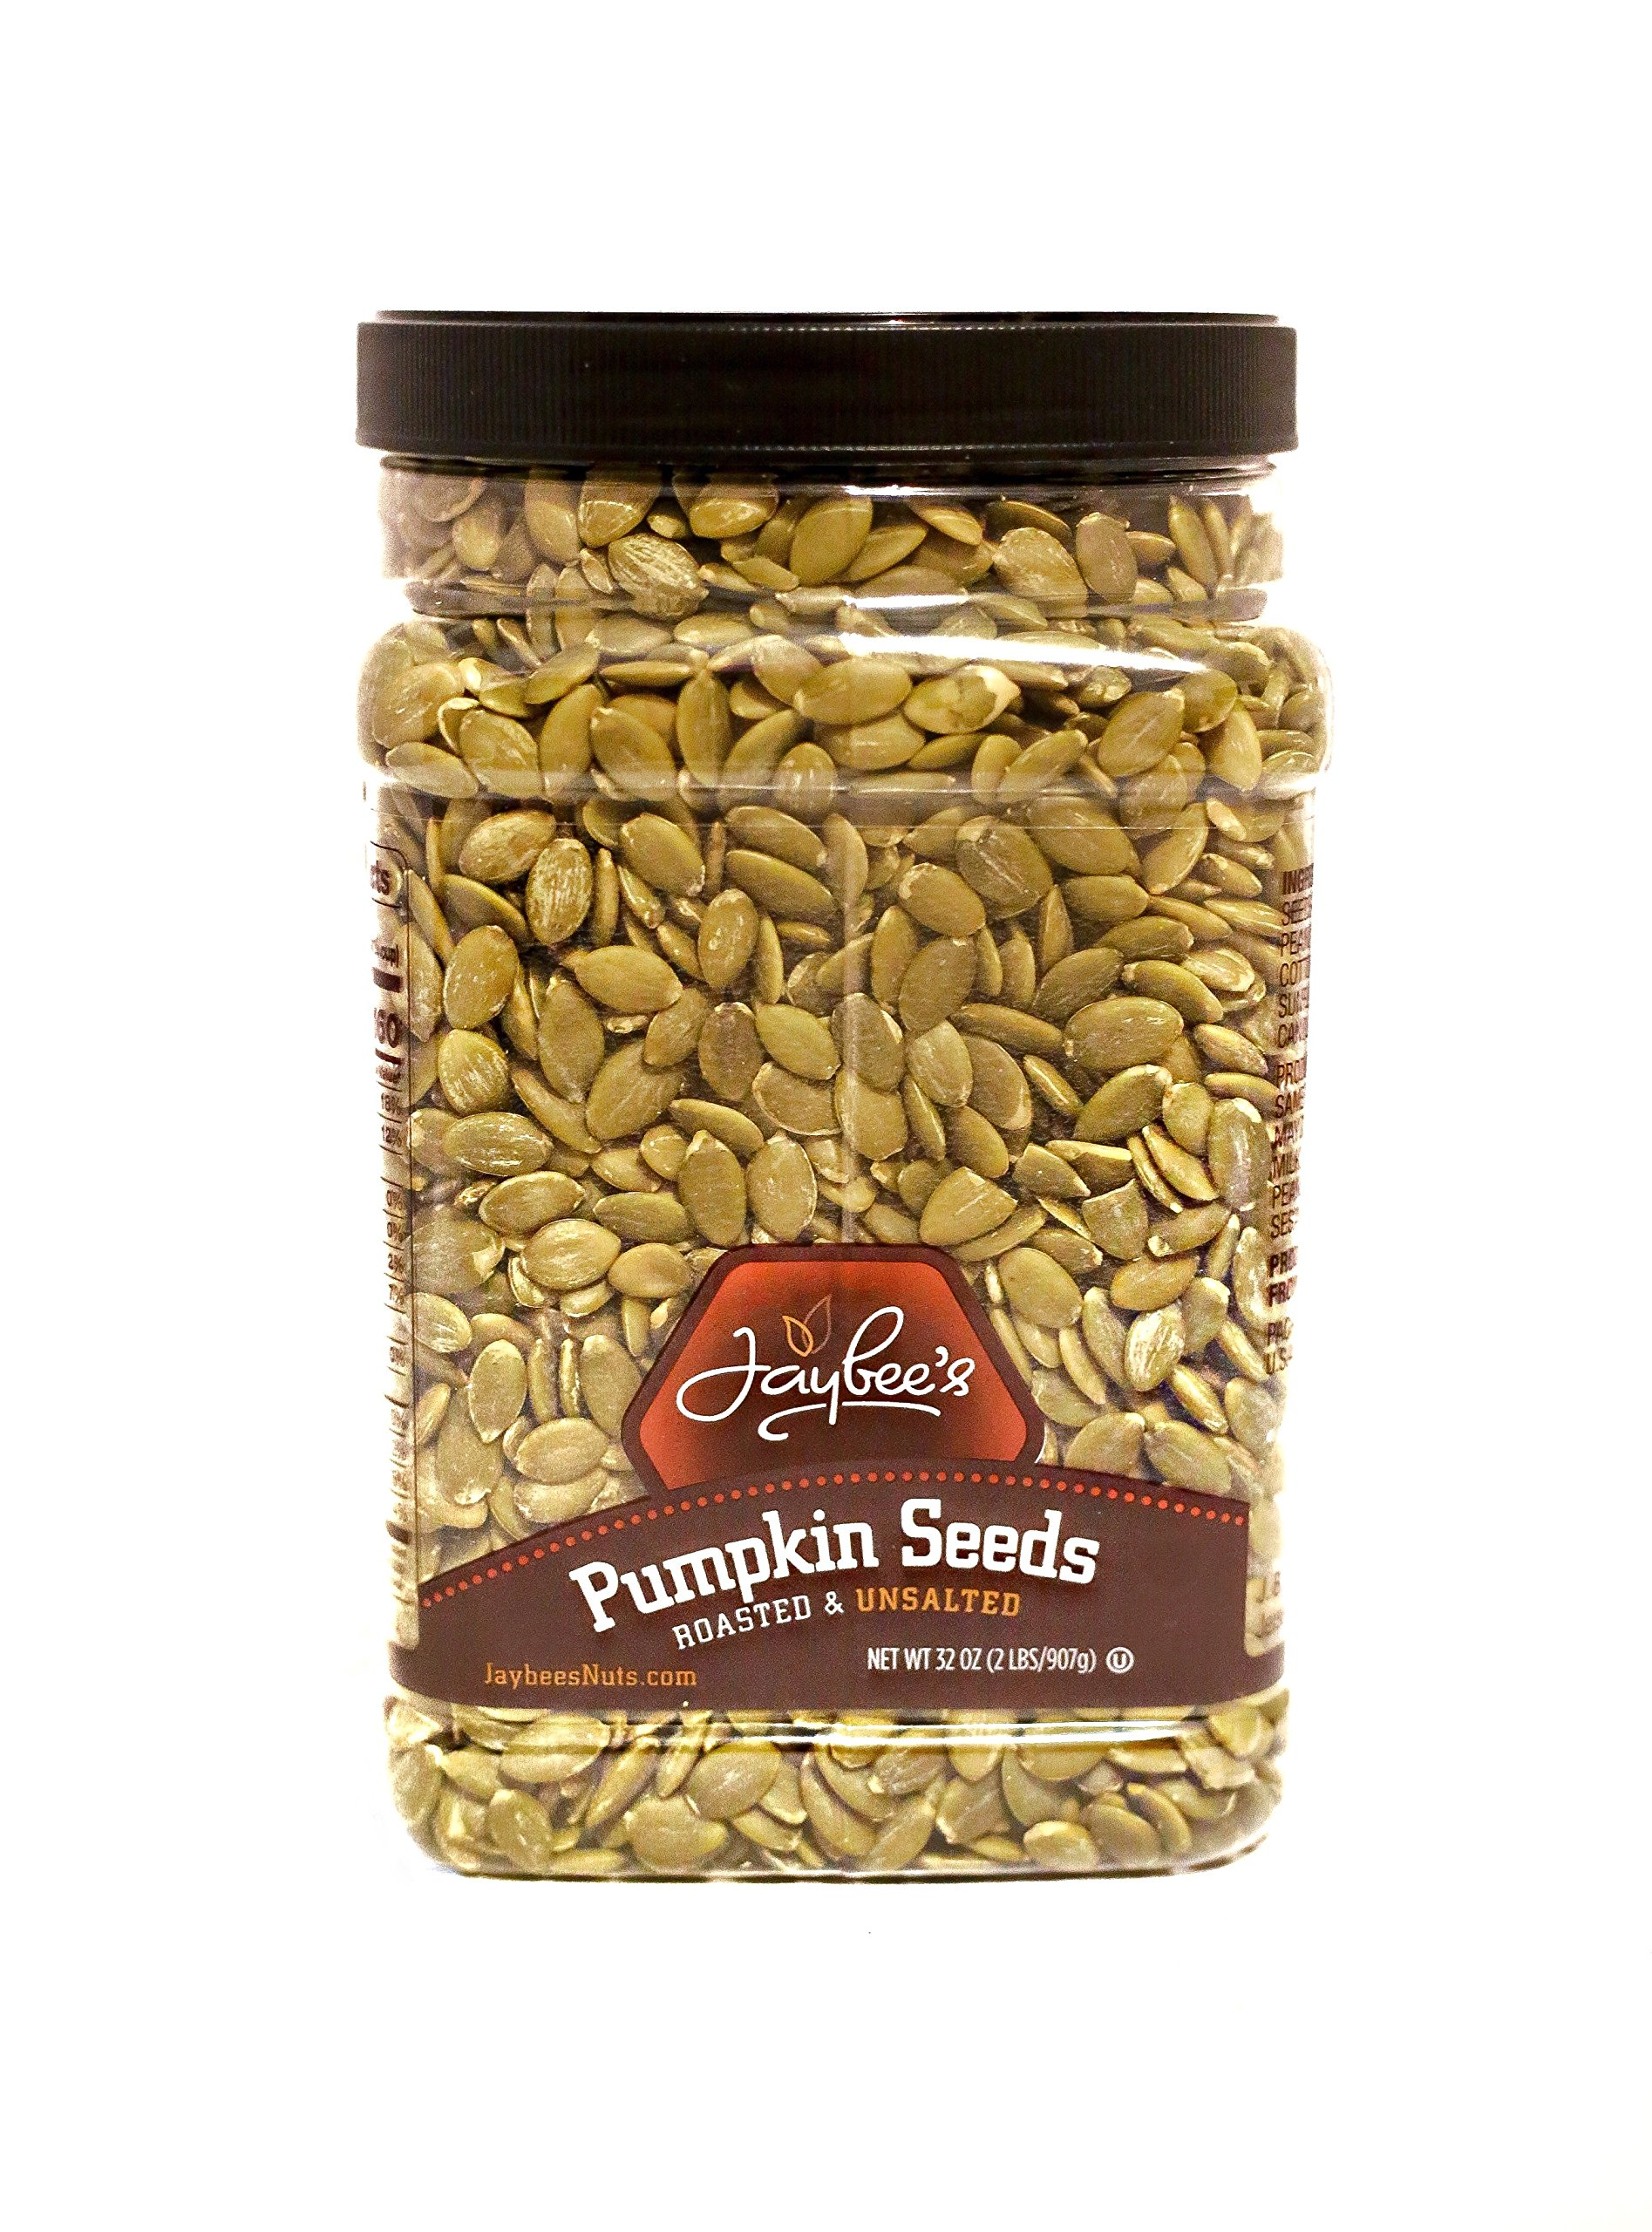 Jaybee's Nuts Pumpkin Seeds Pepitas - Roasted Unsalted (2 LBS) Fresh, Vegetarian Friendly & Kosher Certified -Great Healthy Everyday Snack - Reusable Container by Jaybee's Nuts